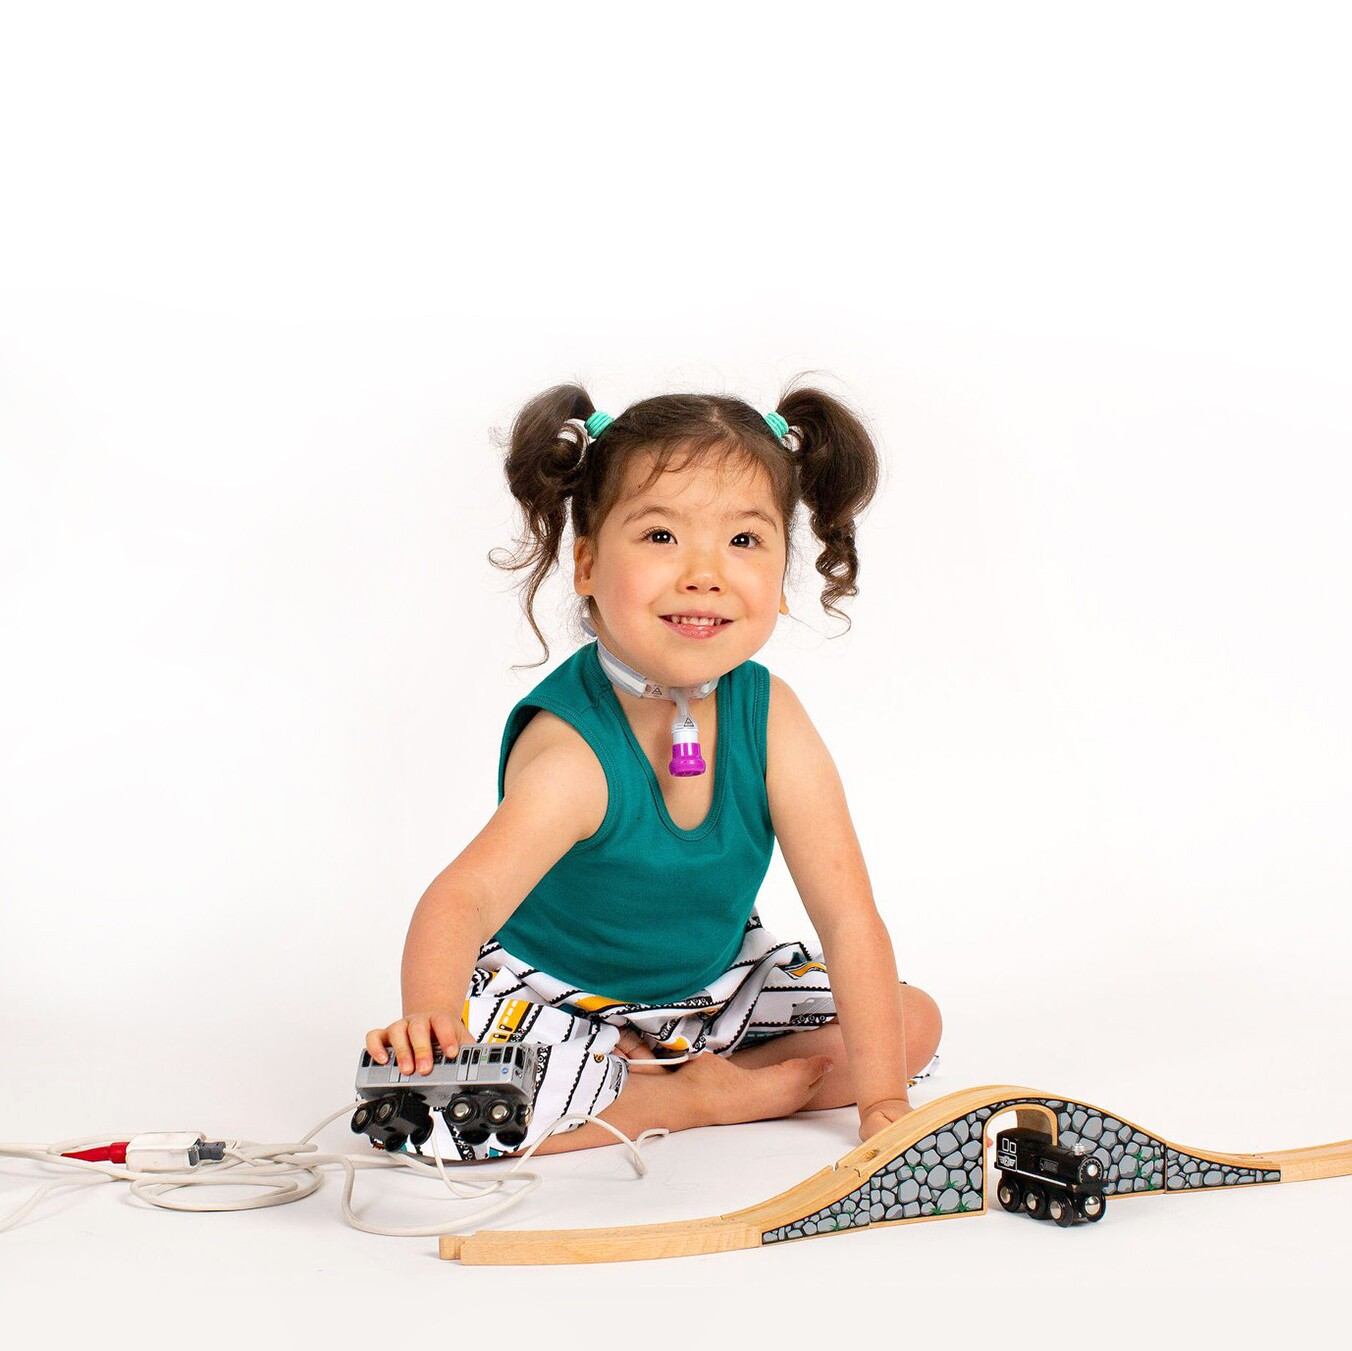 A young girl with a tracheostomy tube playing with trains